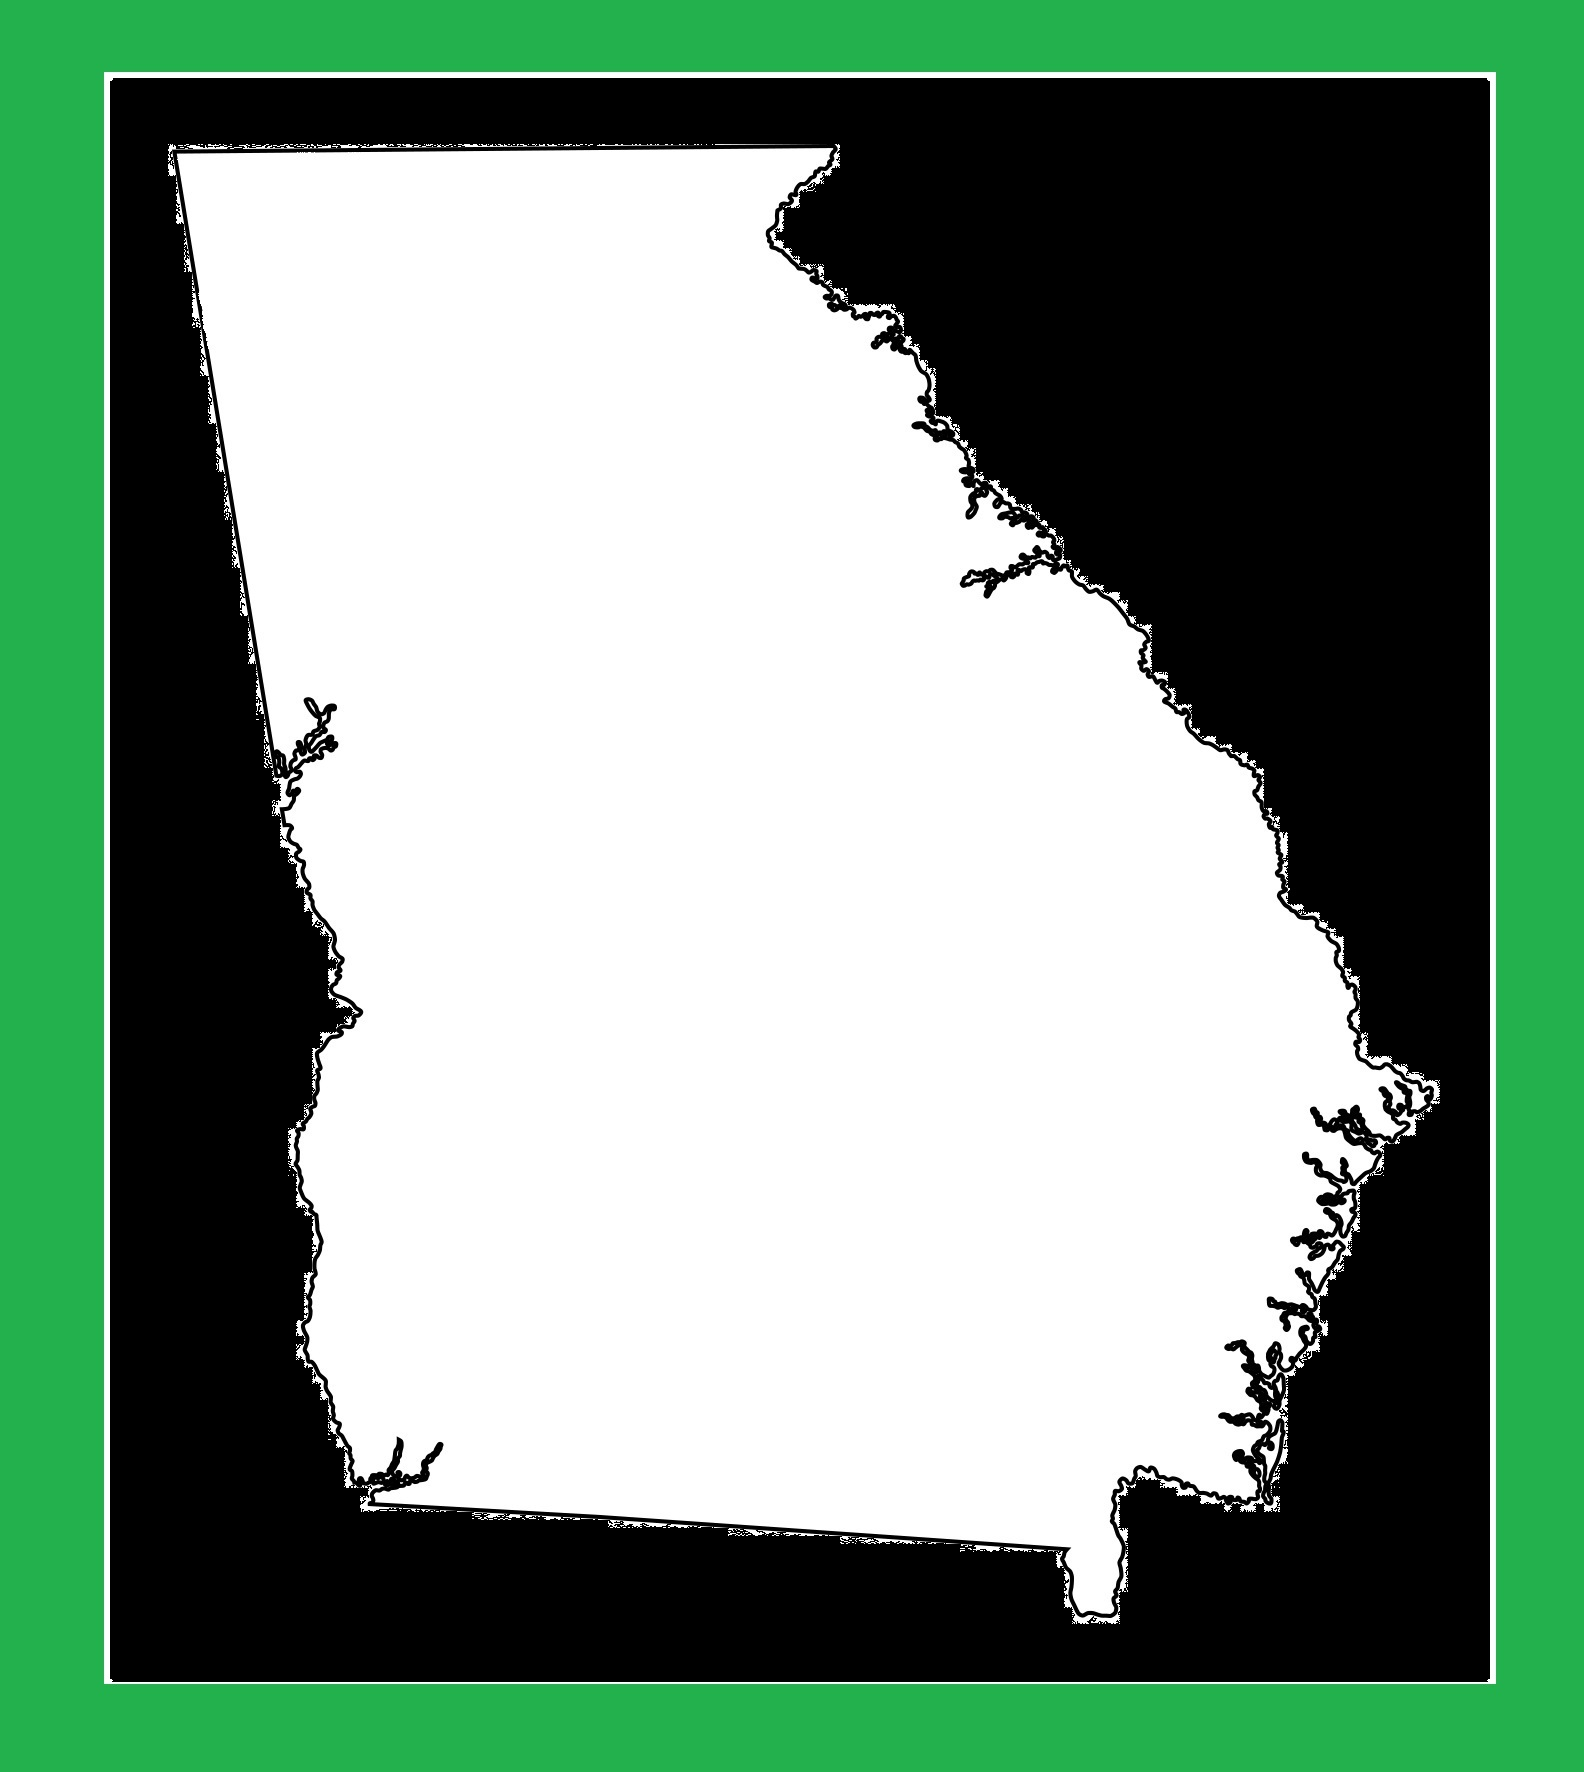 Georgia Blank Outline Map | Large Printable and Standard Map 5